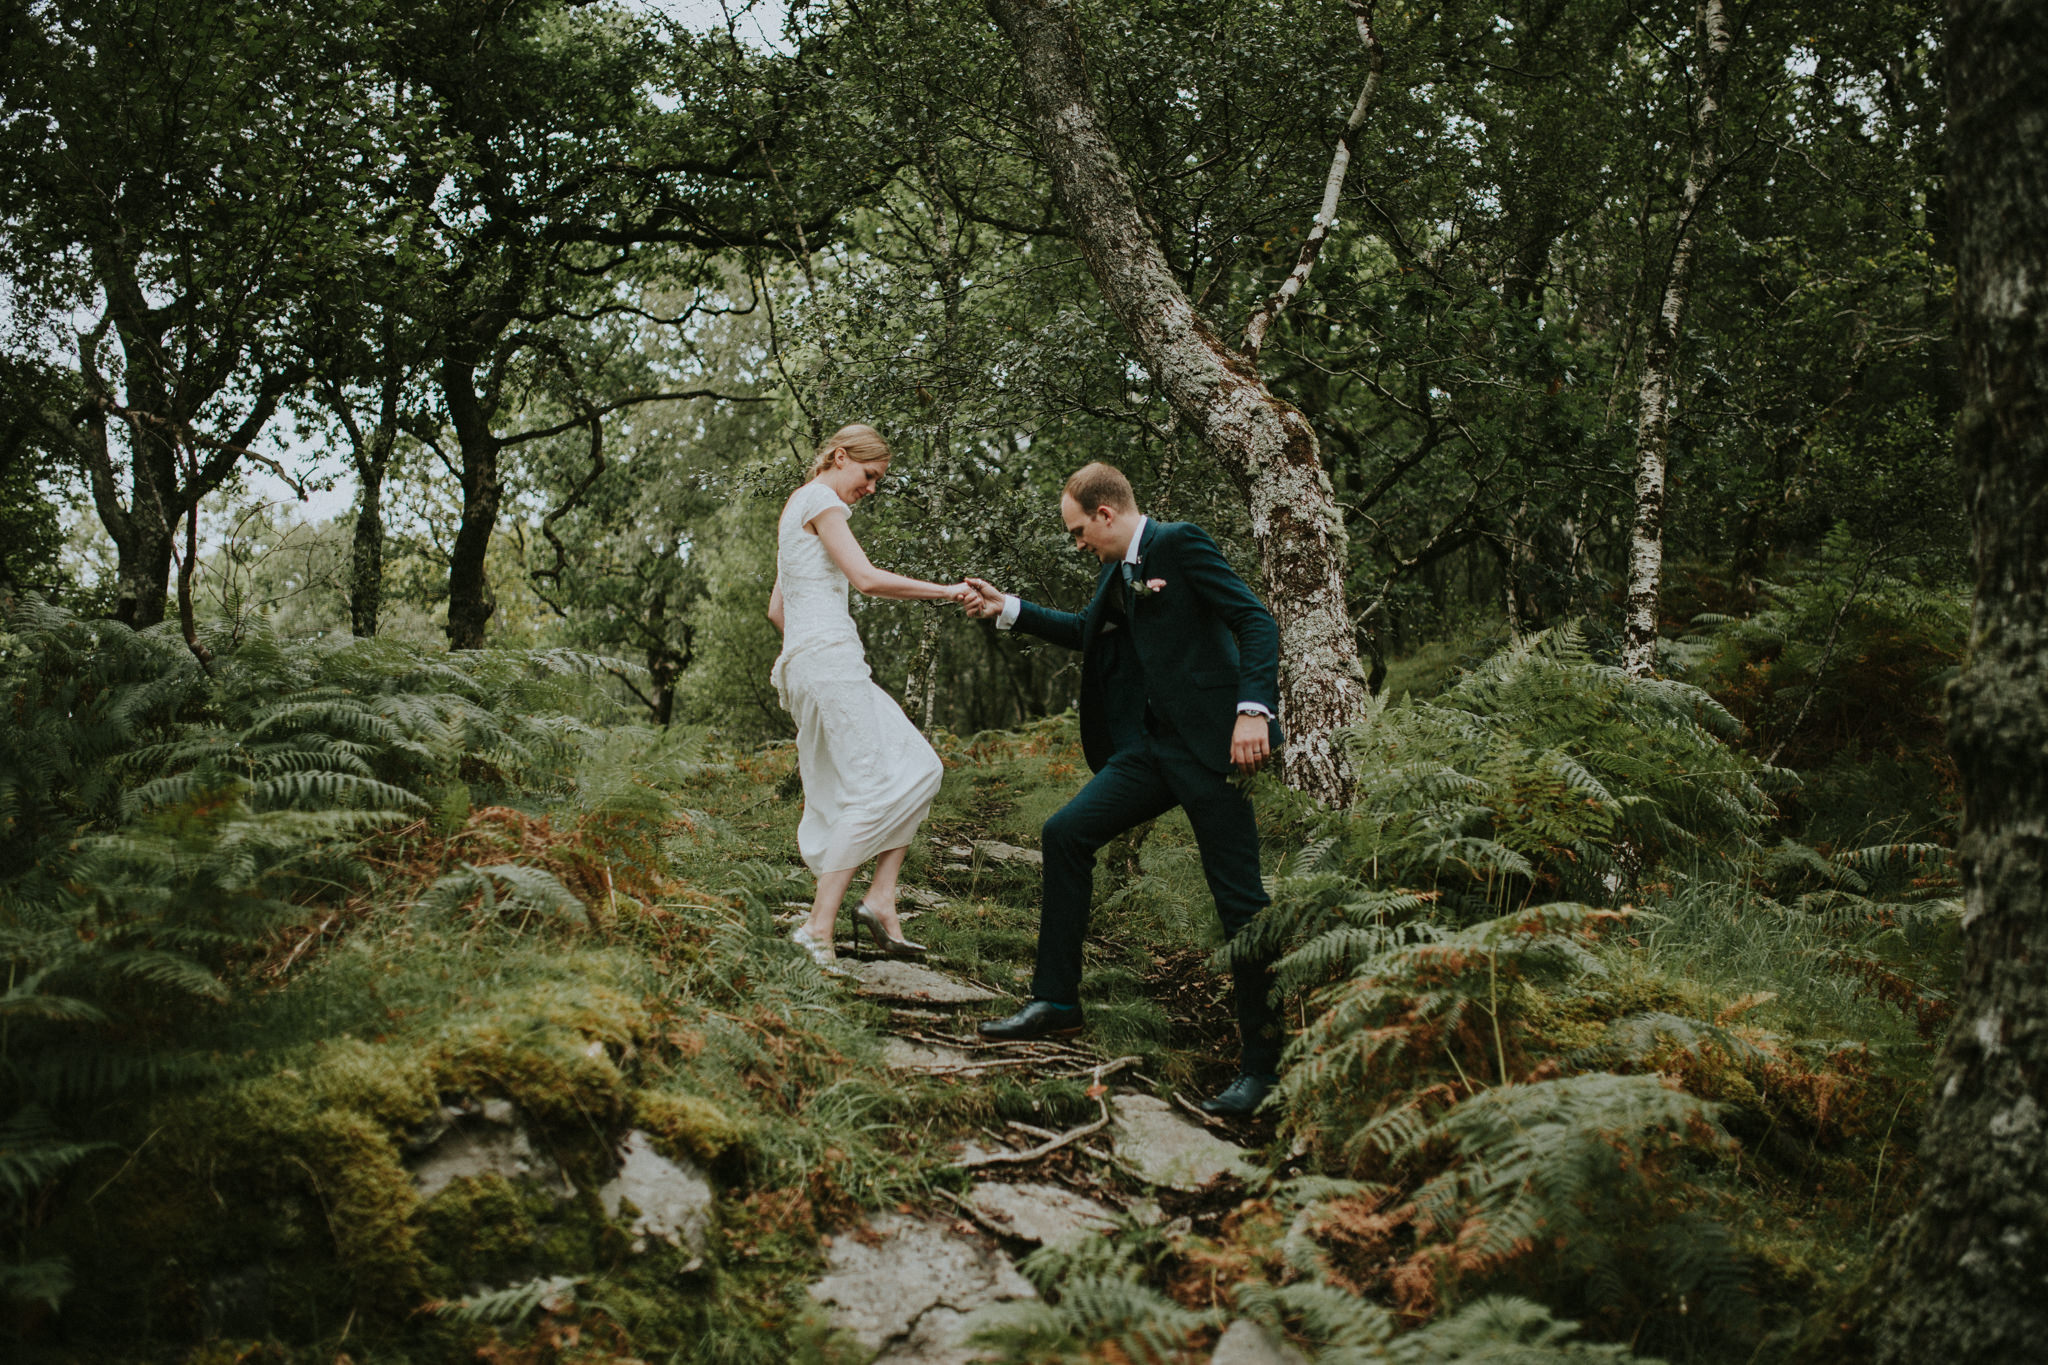 The groom is helping his bride through the forest.